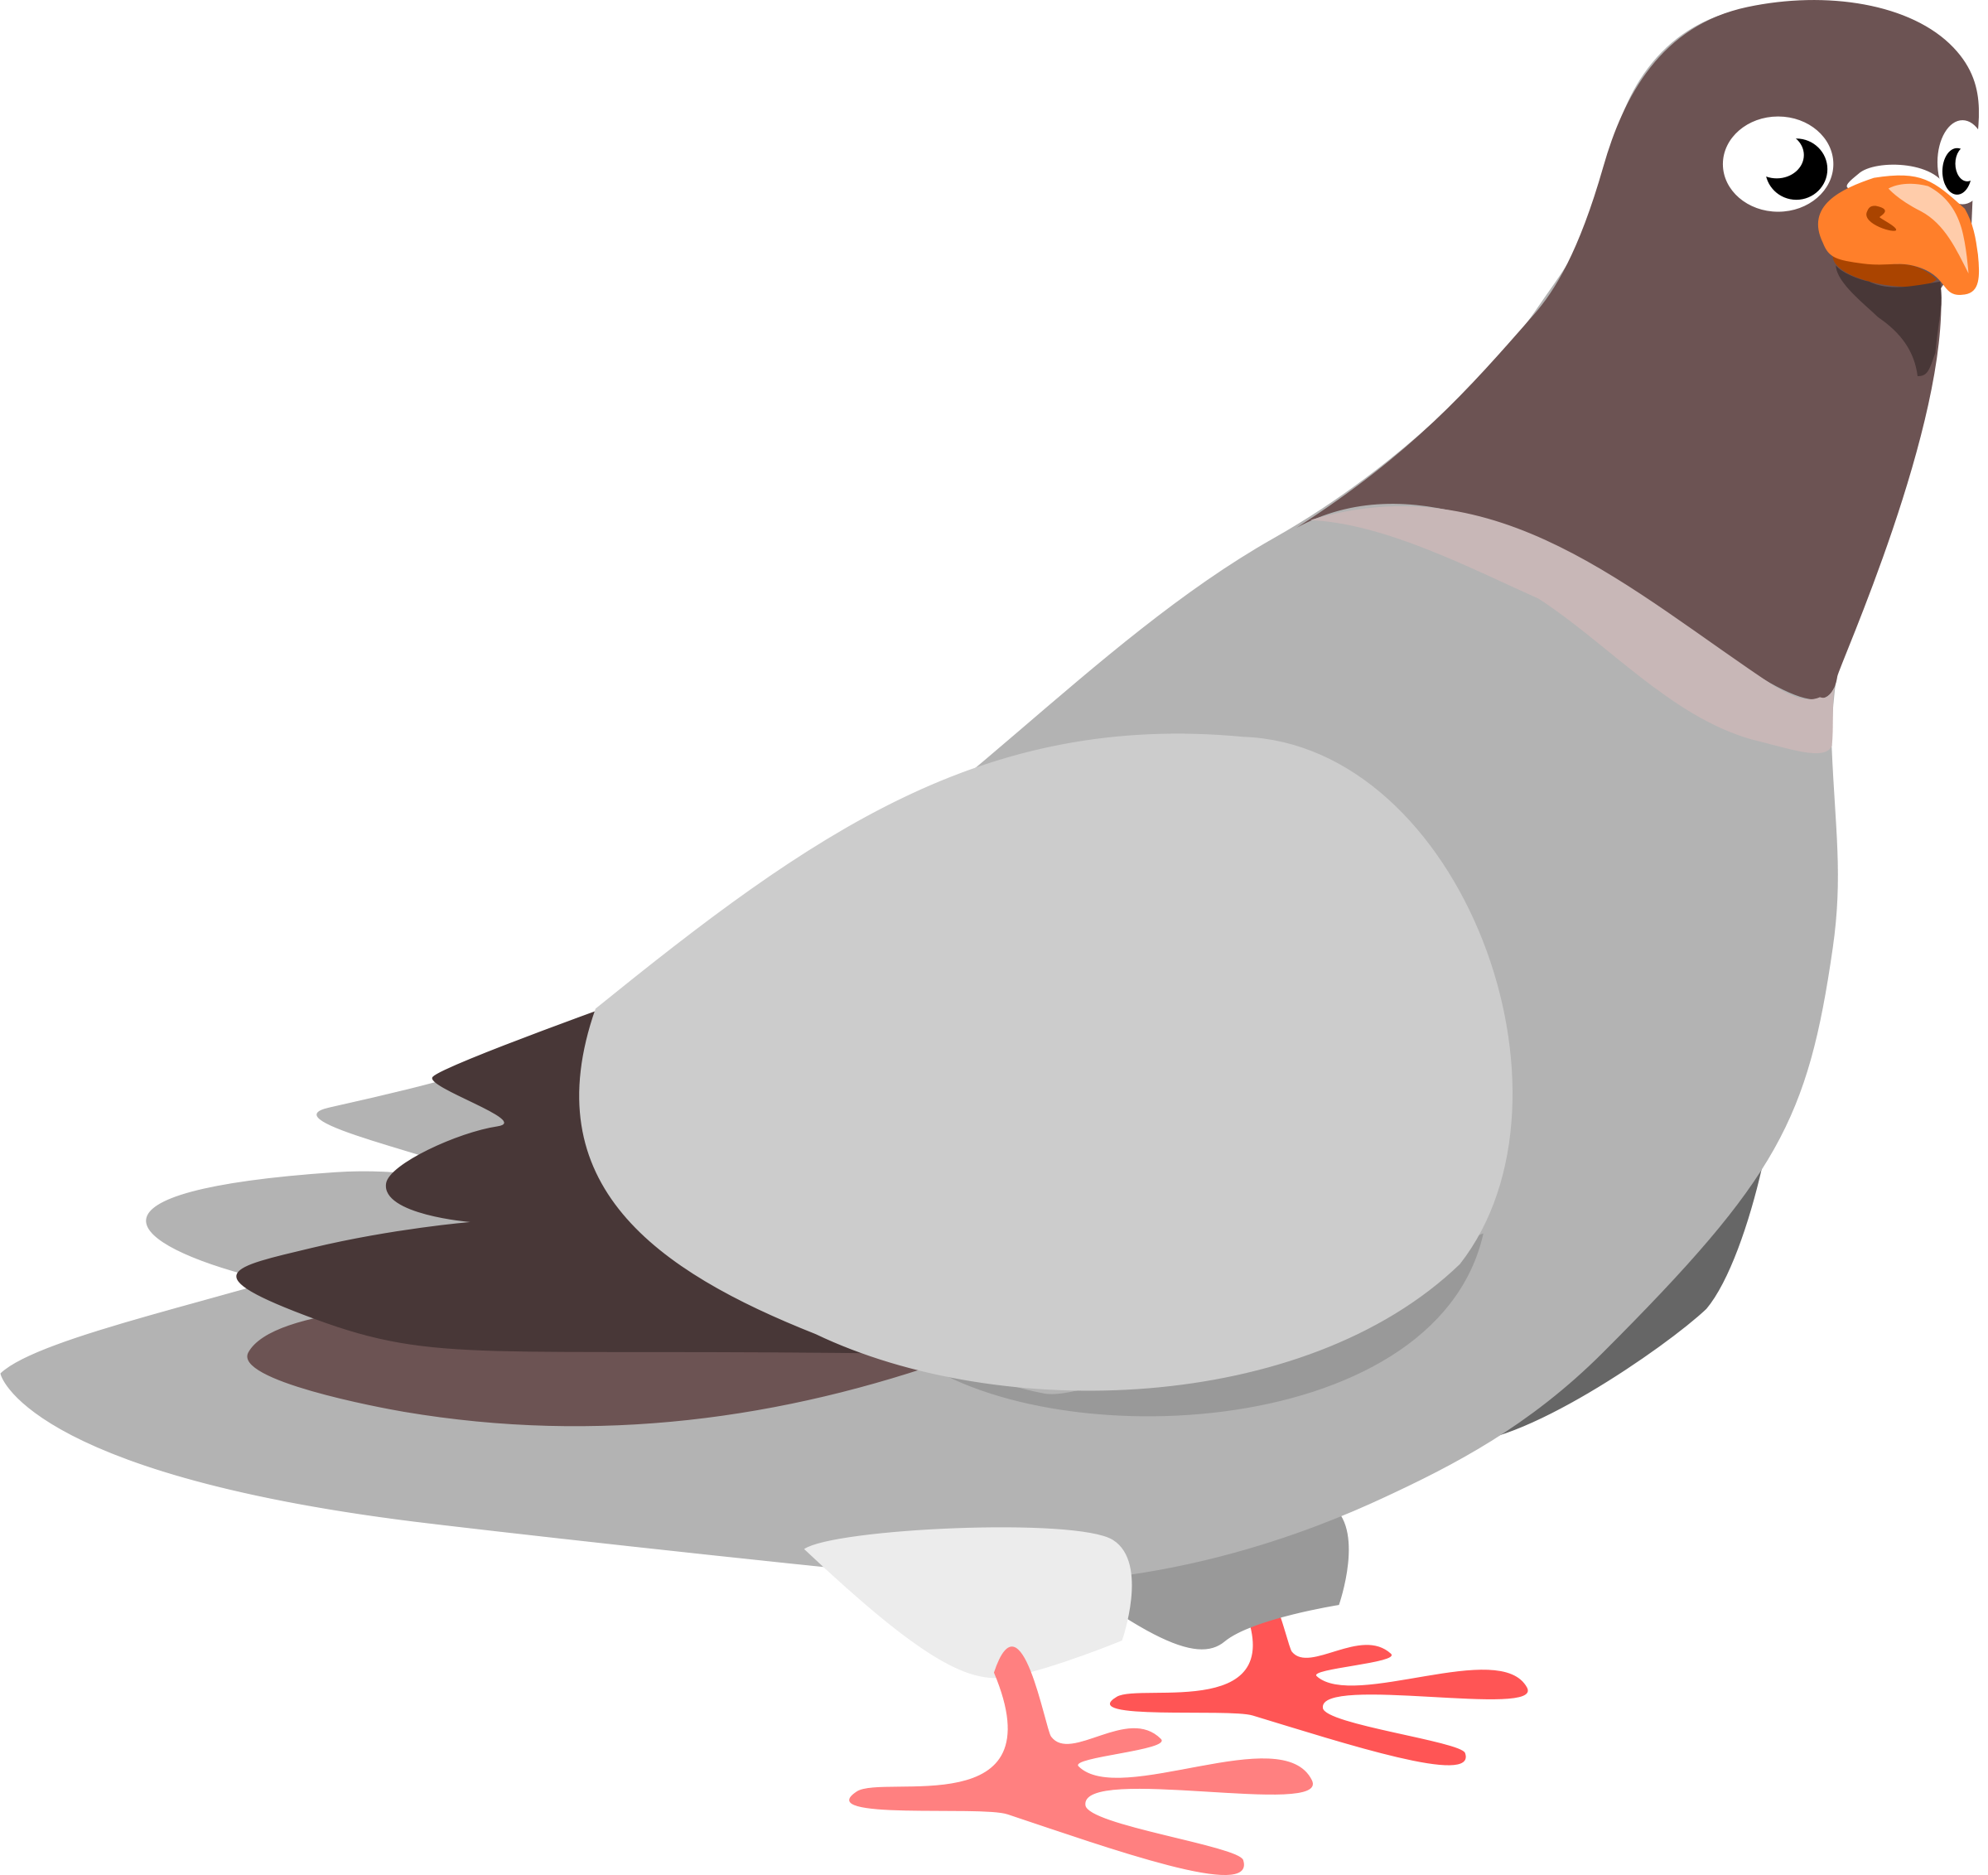 Pidgeons clipart #16, Download drawings